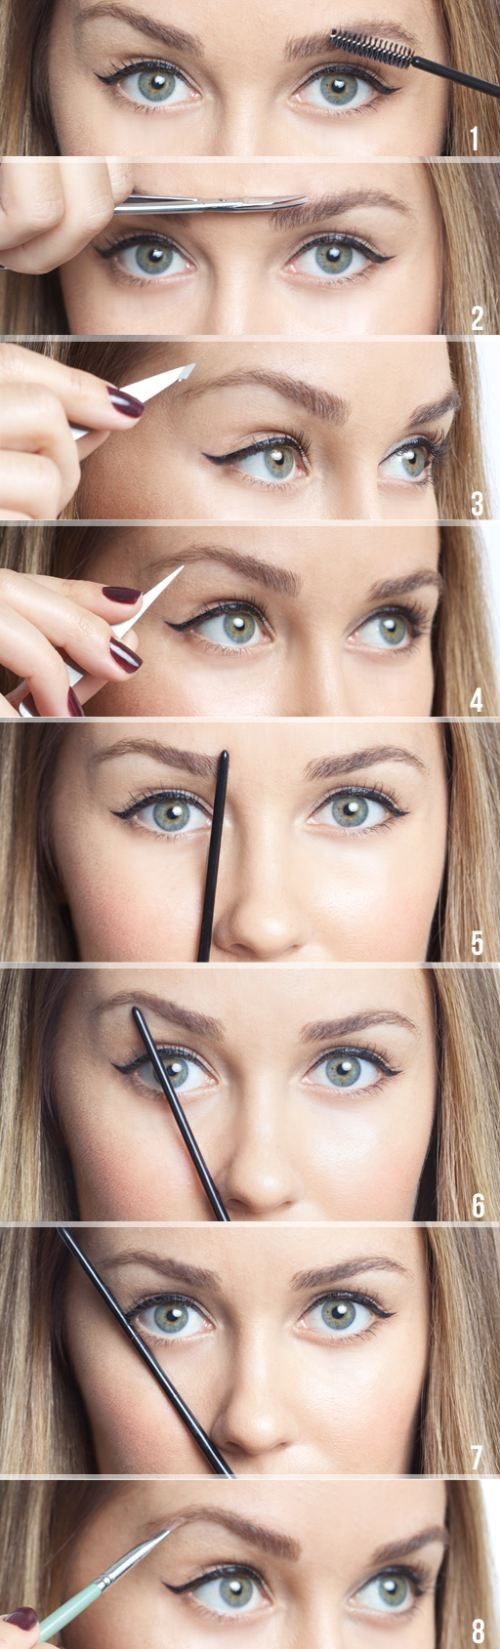 This is how i do it every time !!! Tip: Use a white eye pencil to make marks!